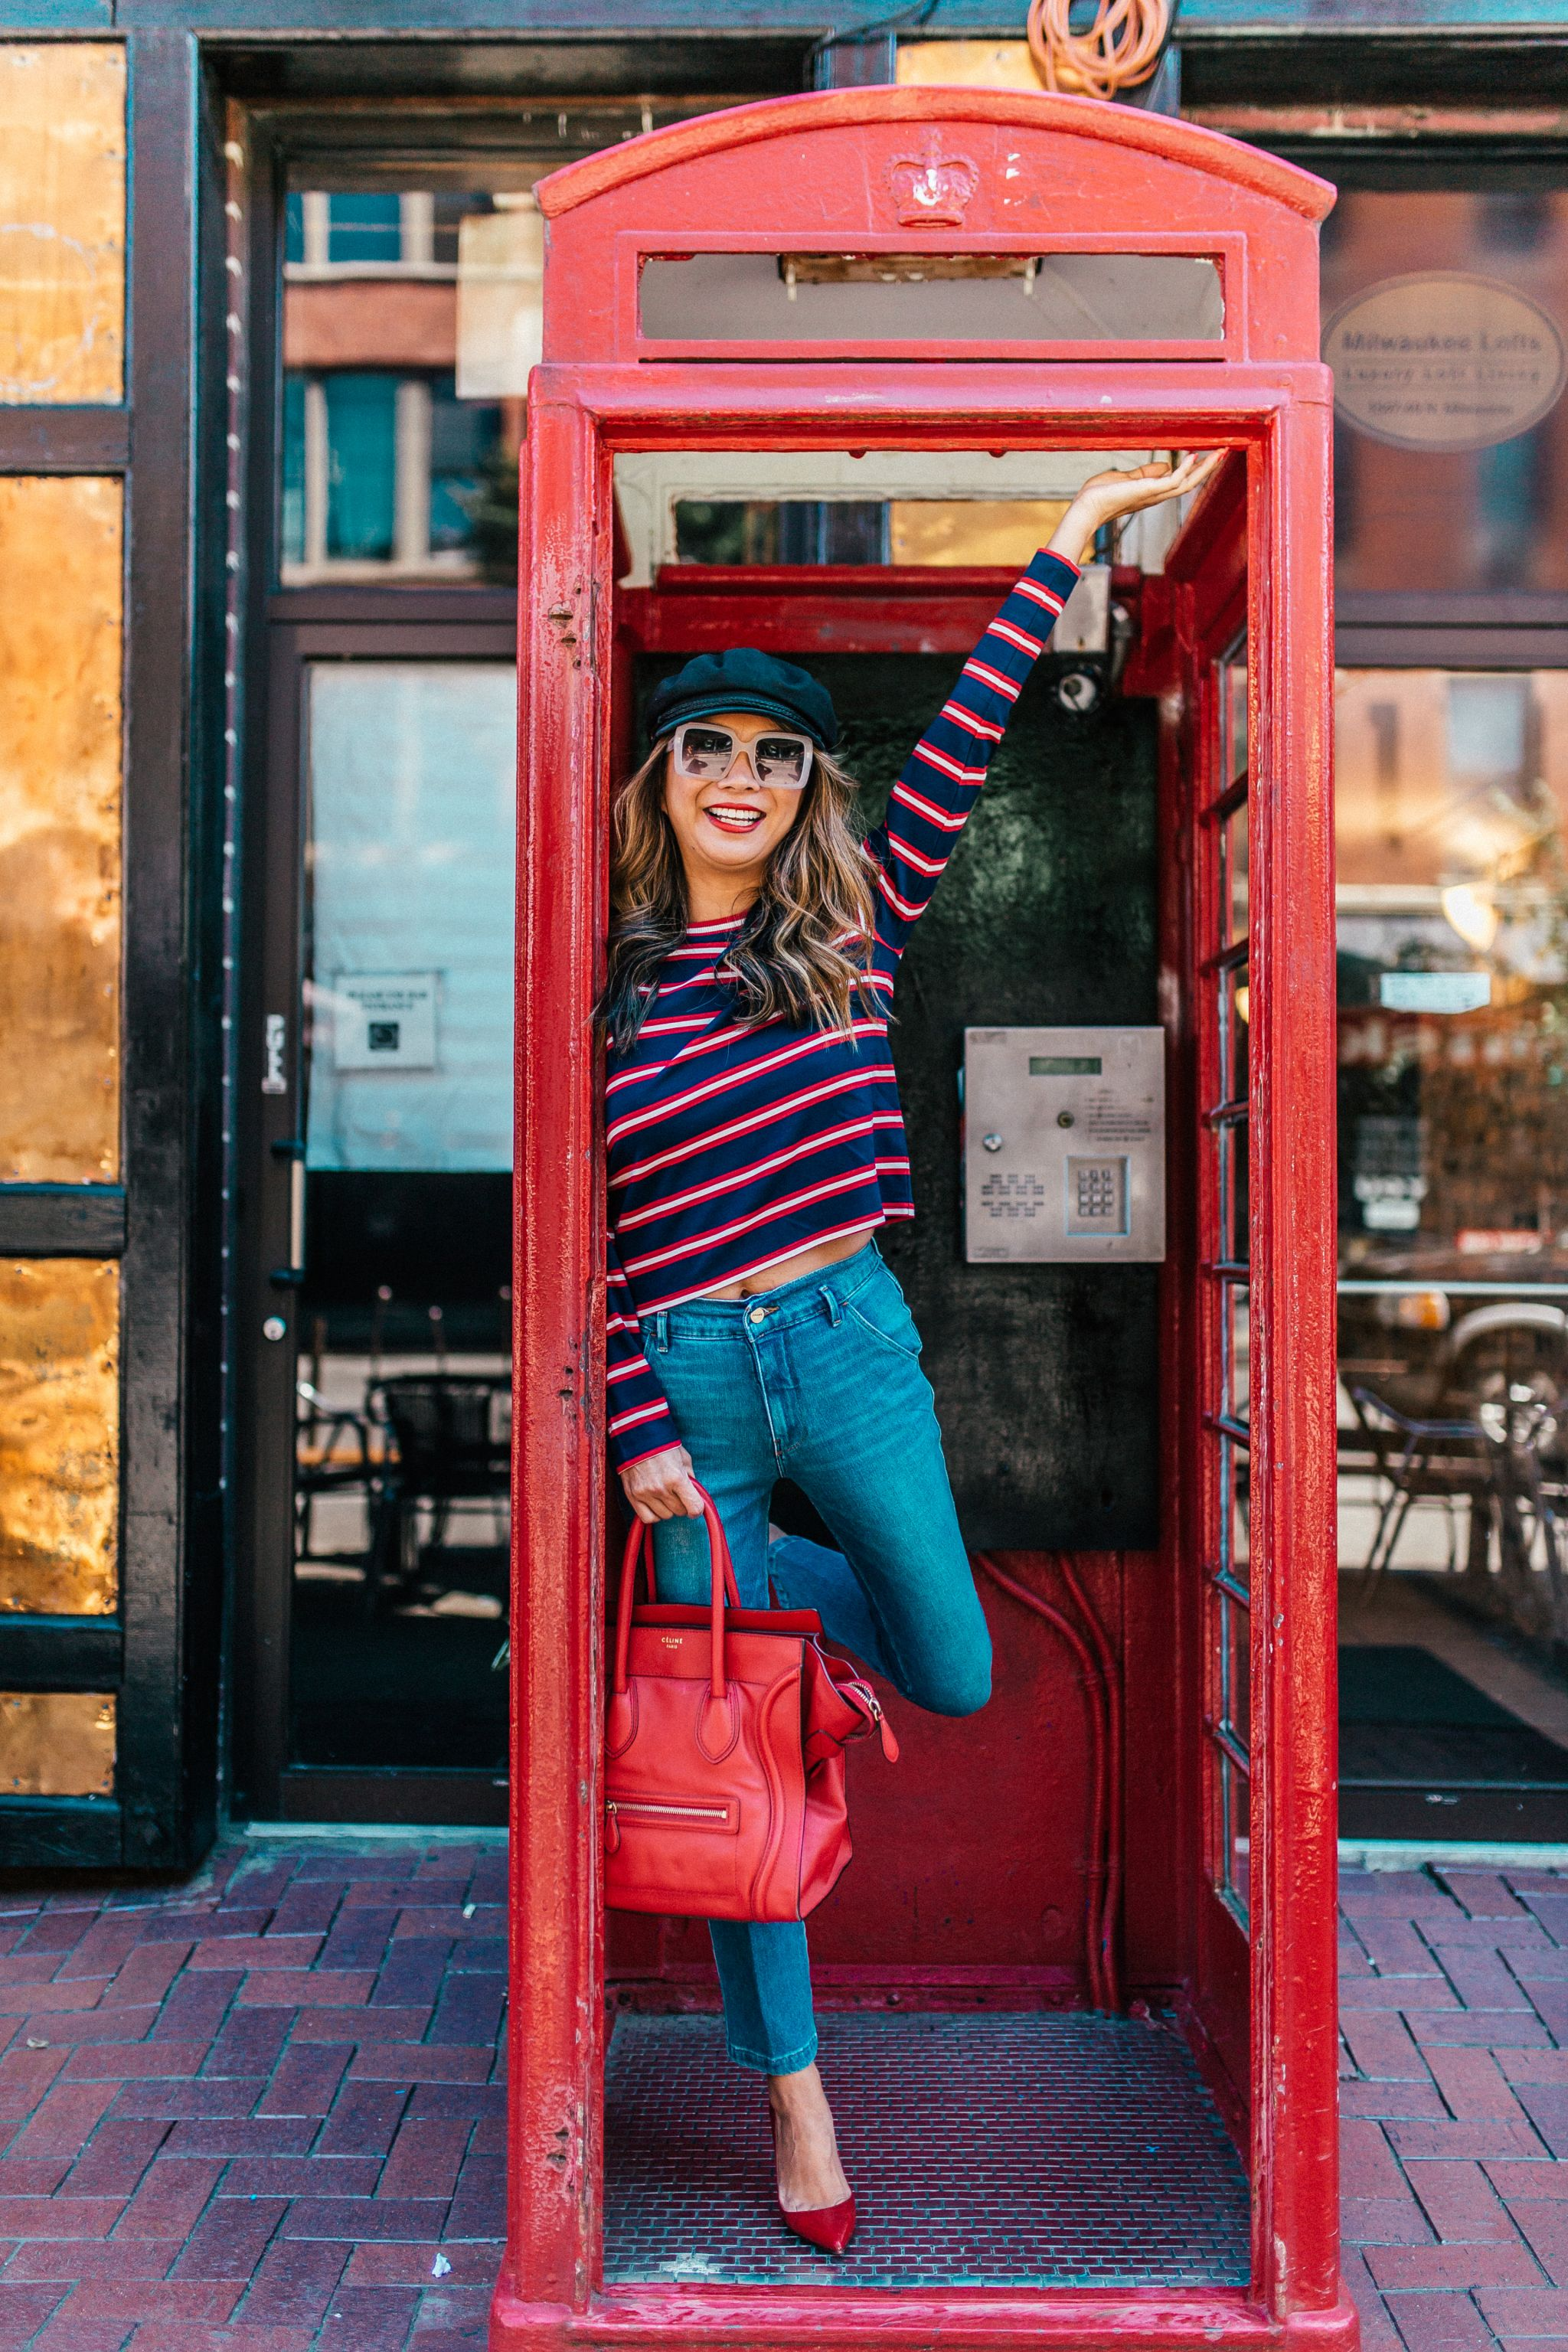 Top Instagrammable places in Chicago, Best place to take instagram photos in chicago, Chicago places to visit to take photos, Jennifer Worman, Best Chicago spots for photos, red phone booth Chicago